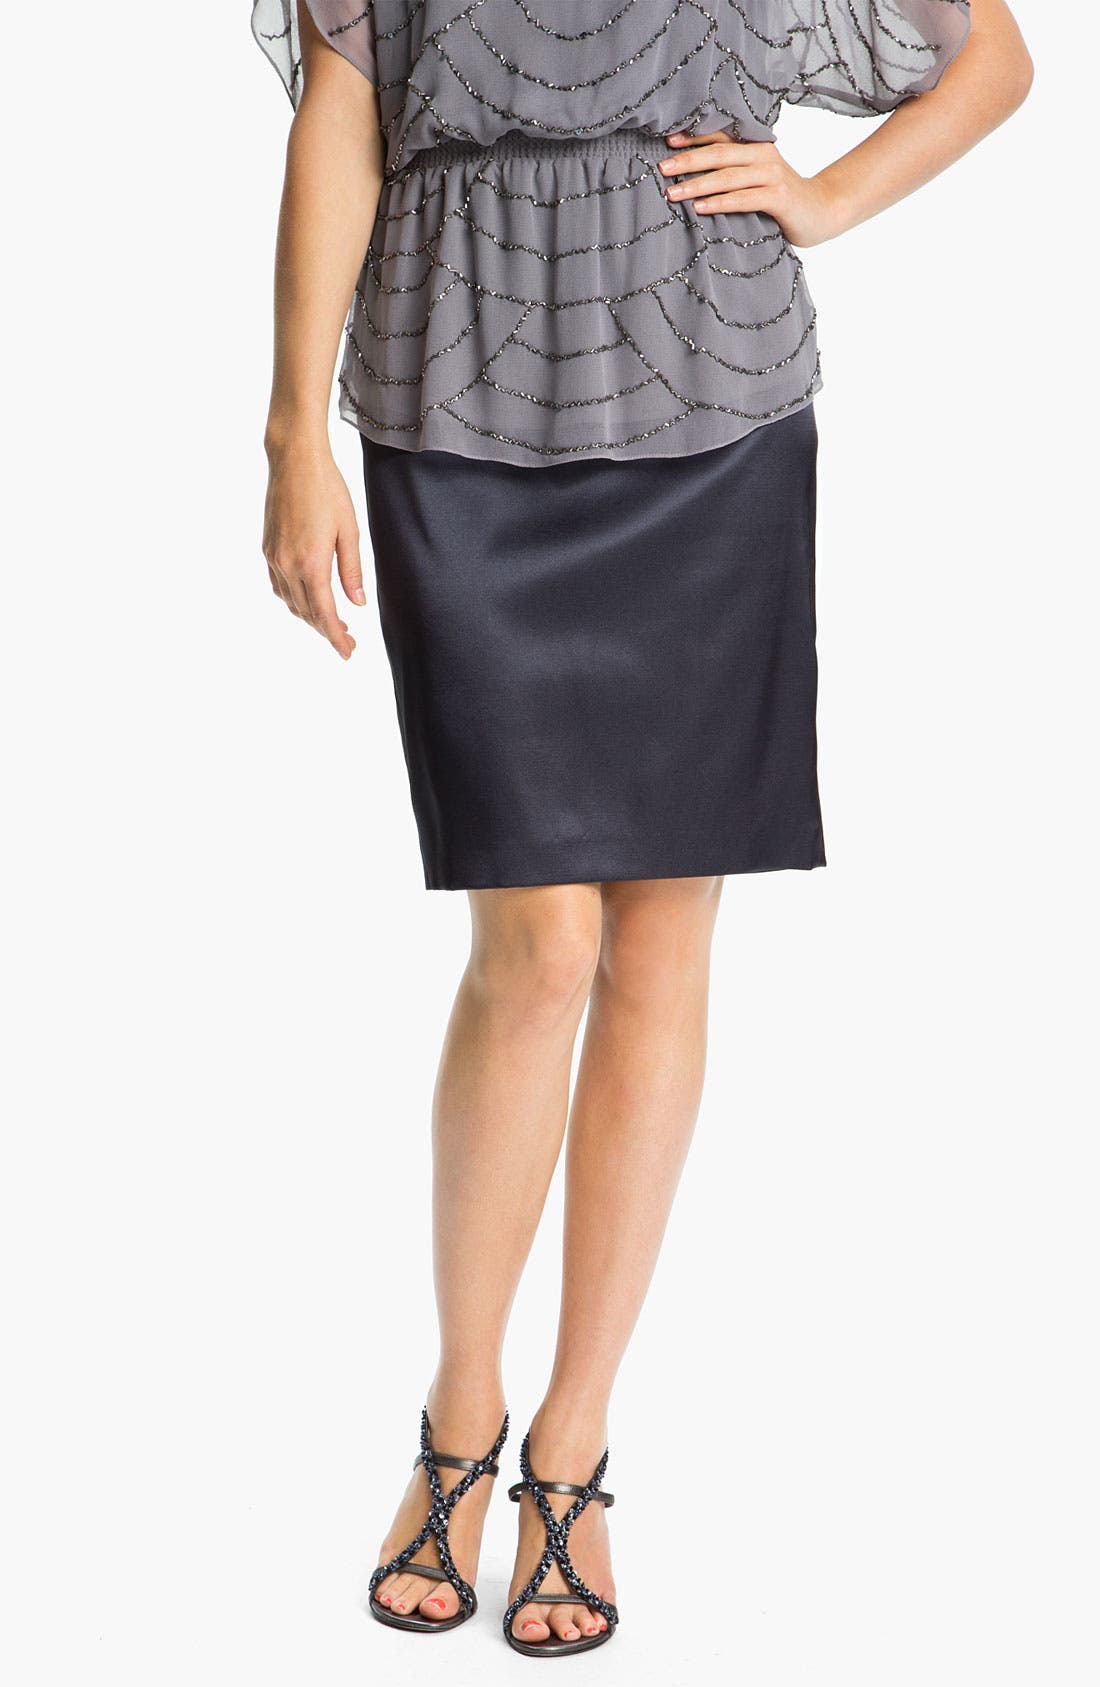 Alternate Image 1 Selected - Adrianna Papell Stretch Charmeuse Pencil Skirt (Petite)